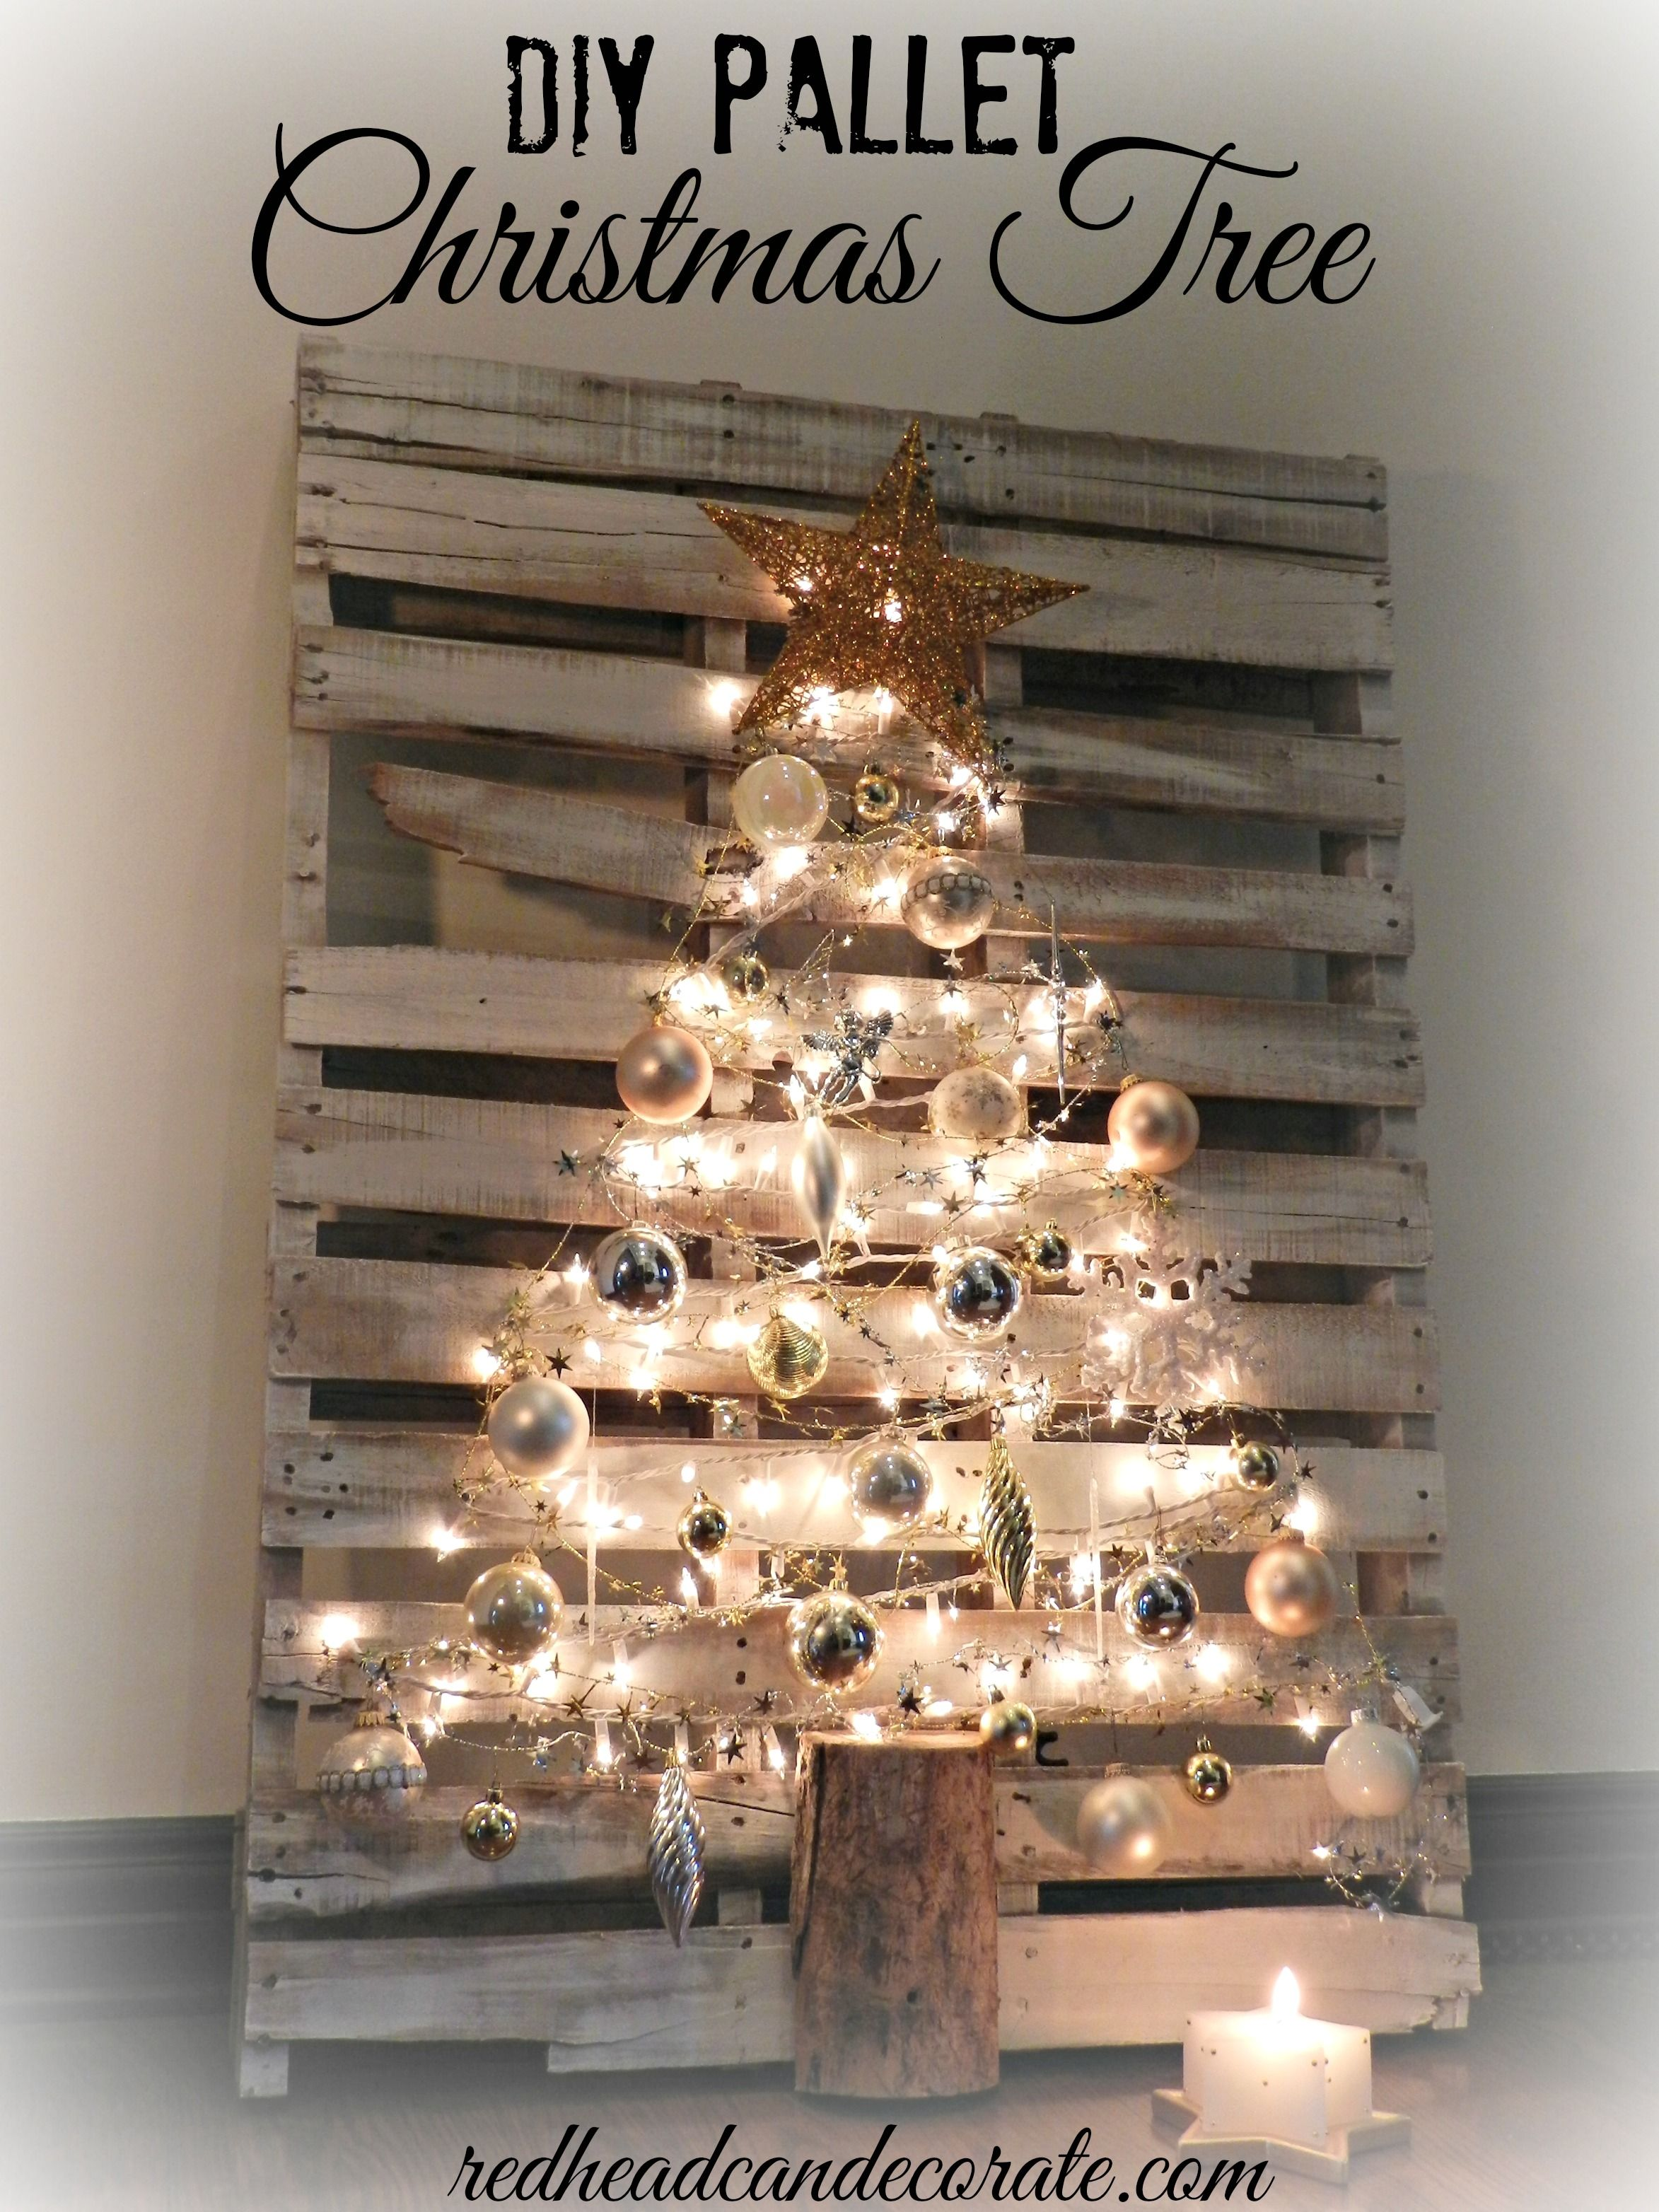 Palette Decoration Pallet Christmas Tree Christmas Crafts Christmas Party